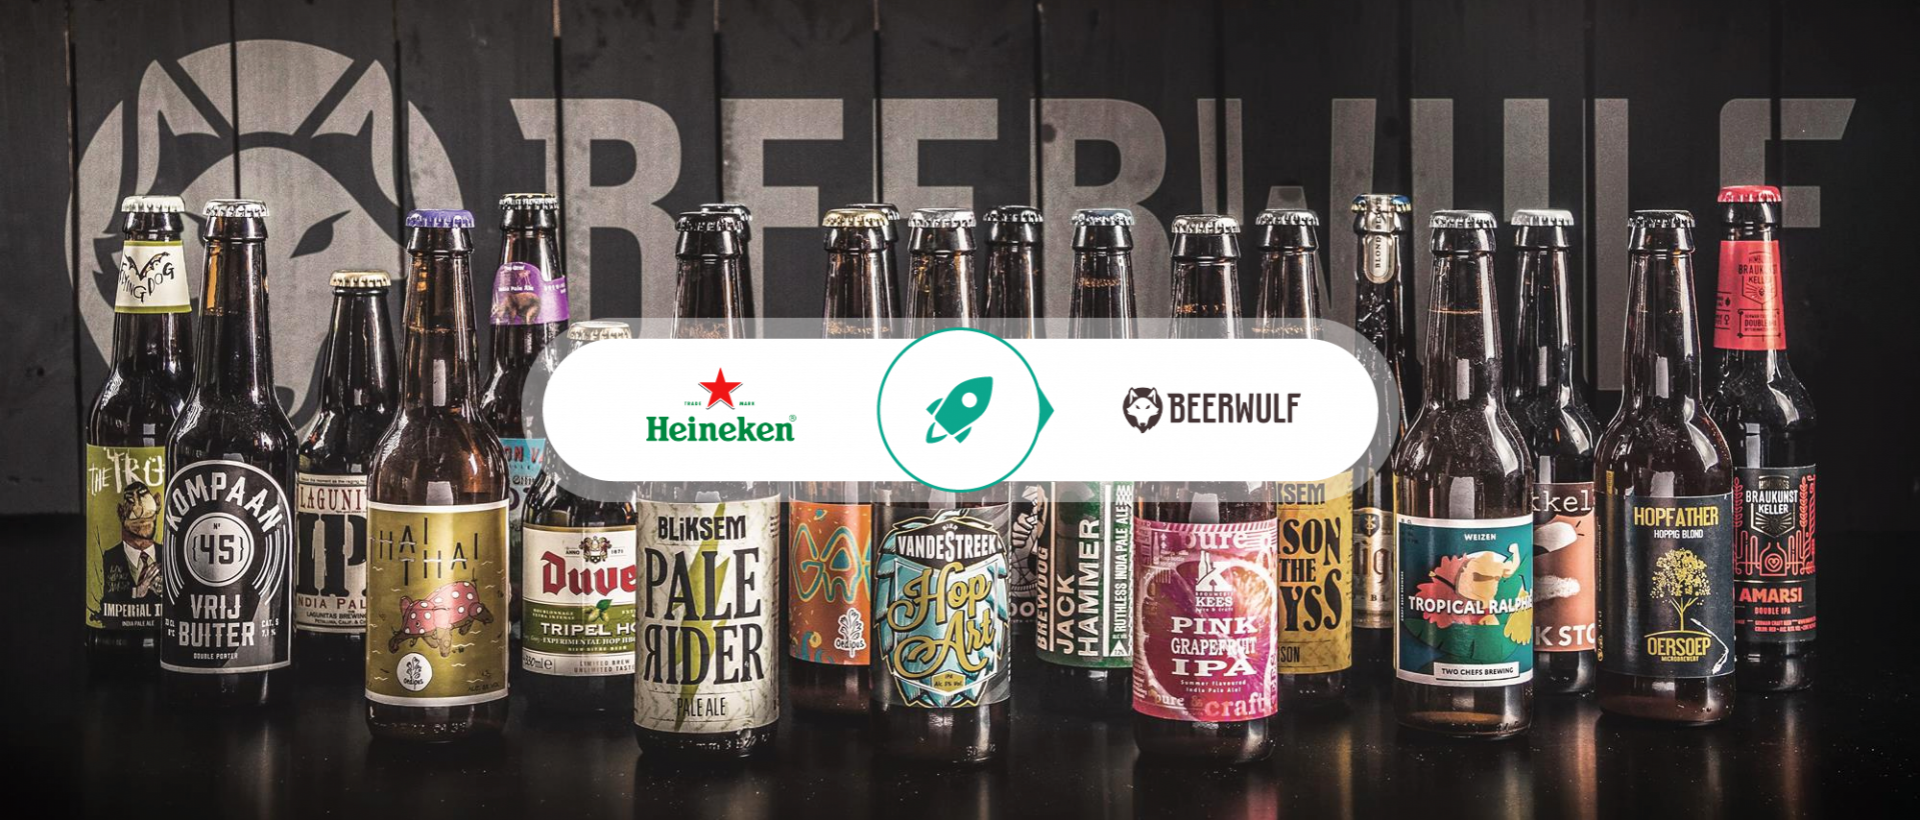 How Heineken disrupted the craft beer market without brewing a new drink